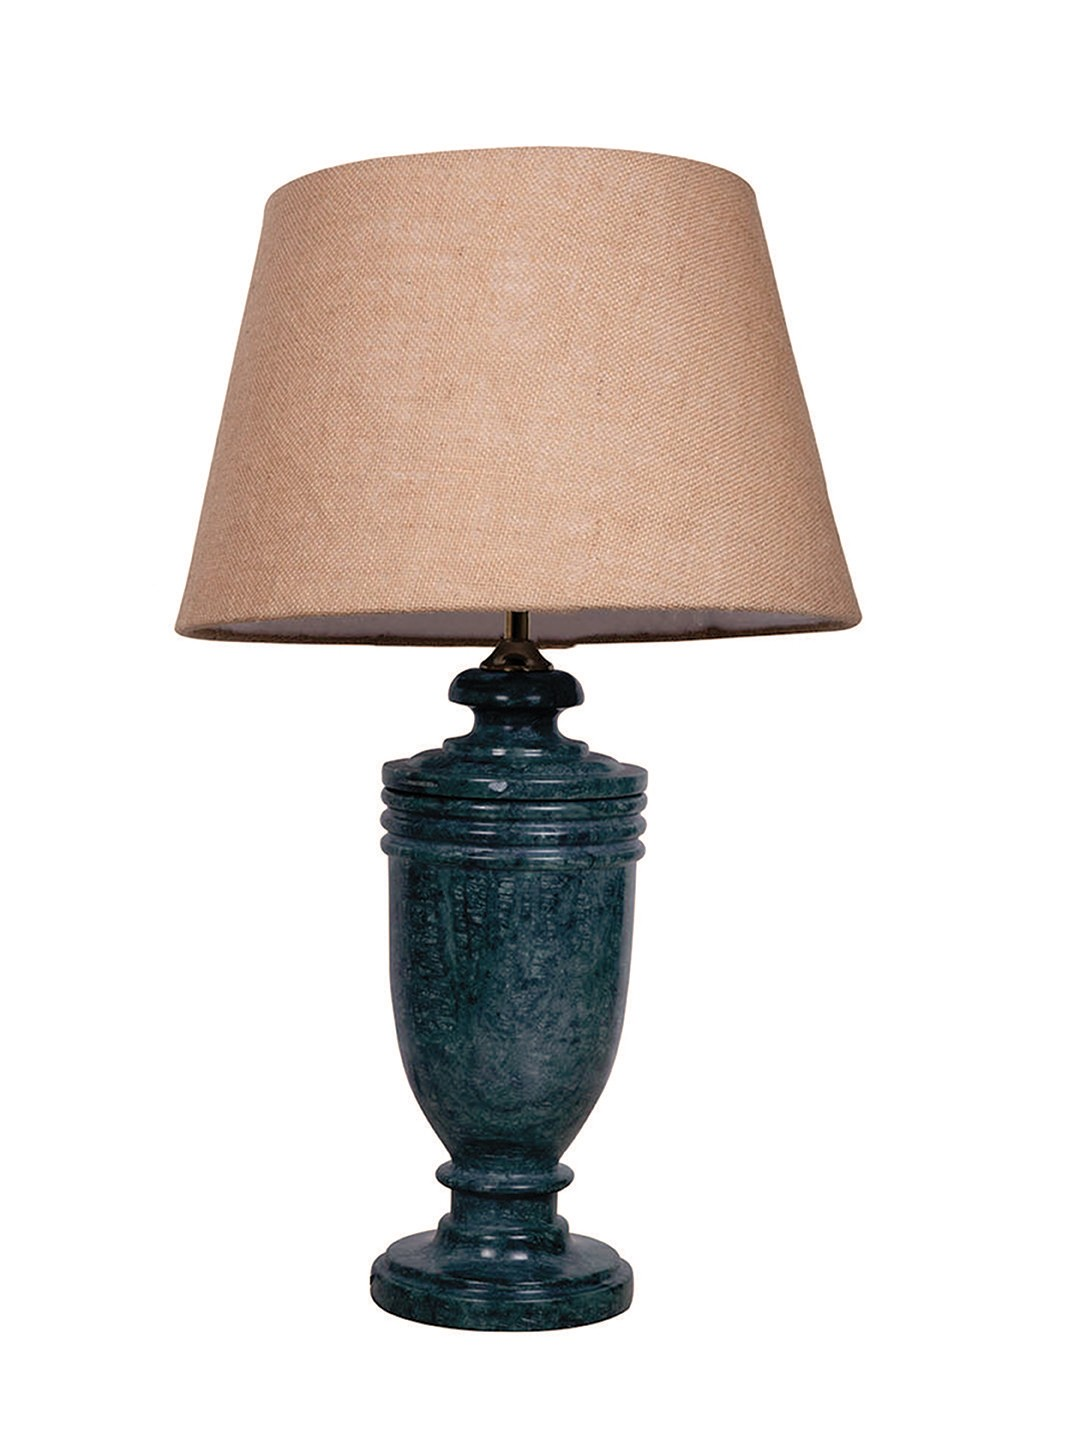 Green Marble Trophy Table Lamp with Jute Shade